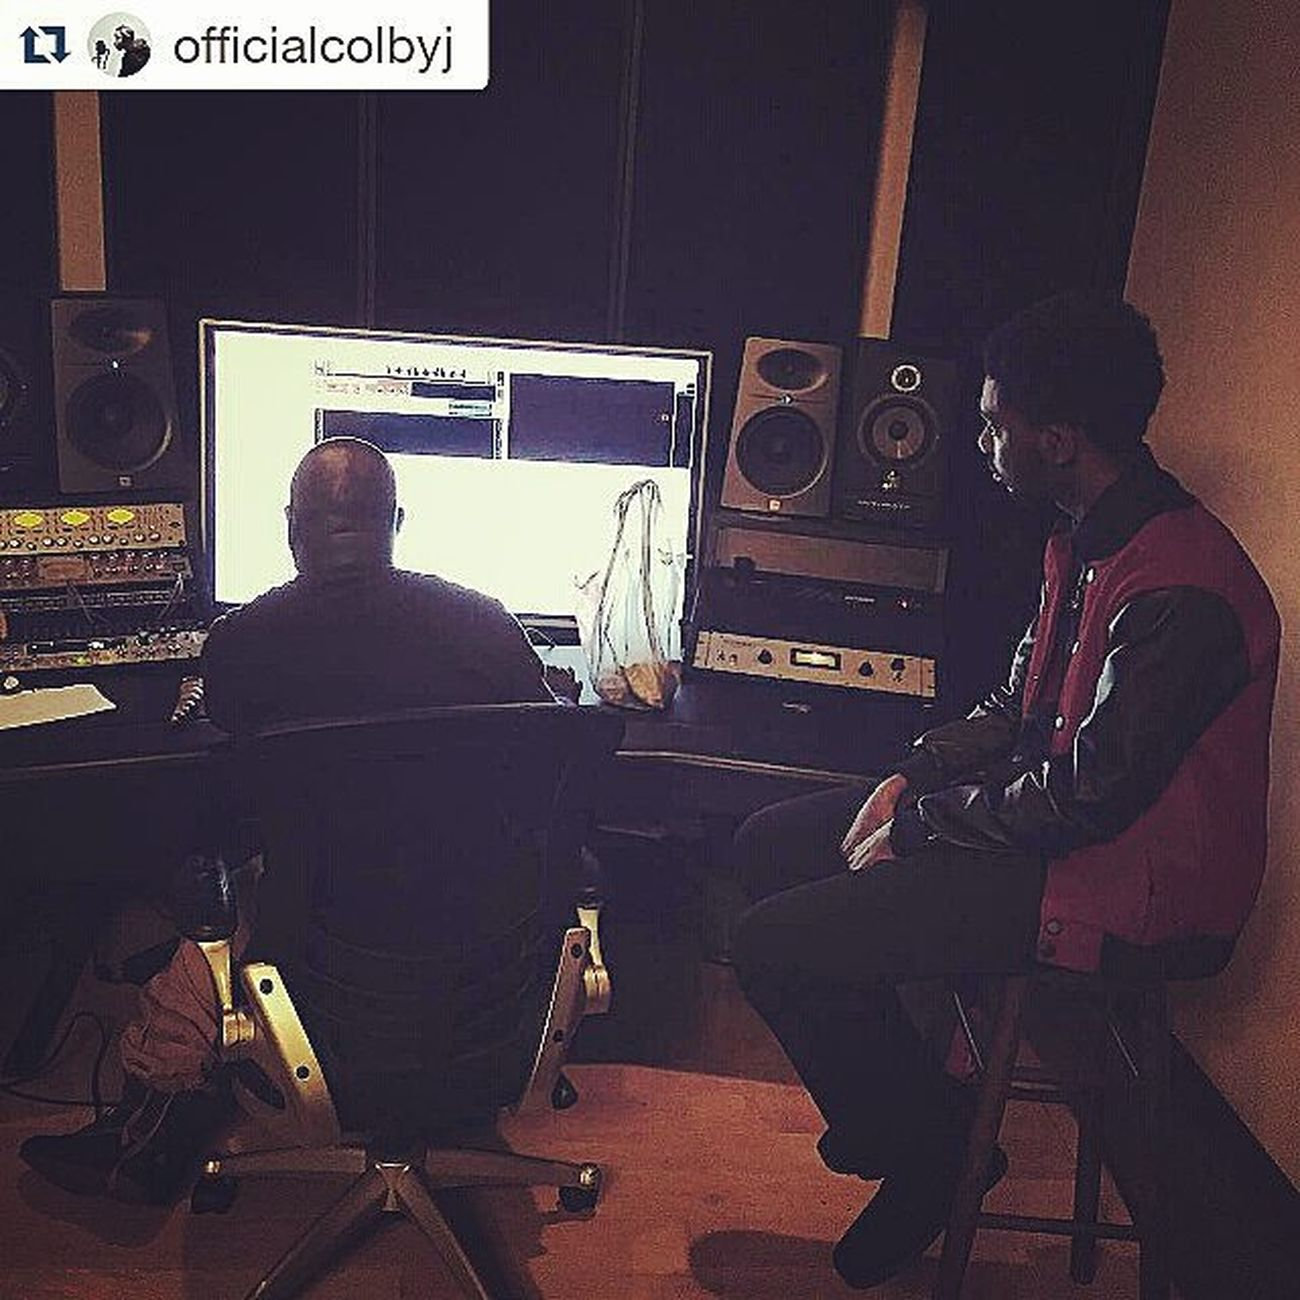 Repost @officialcolbyj with Good studio session today, learned some valuable life lessons. Thank you again @unanimousmusicgroup for the love and opened door, blessings! UMGStudios Musicfactory Purposedriven